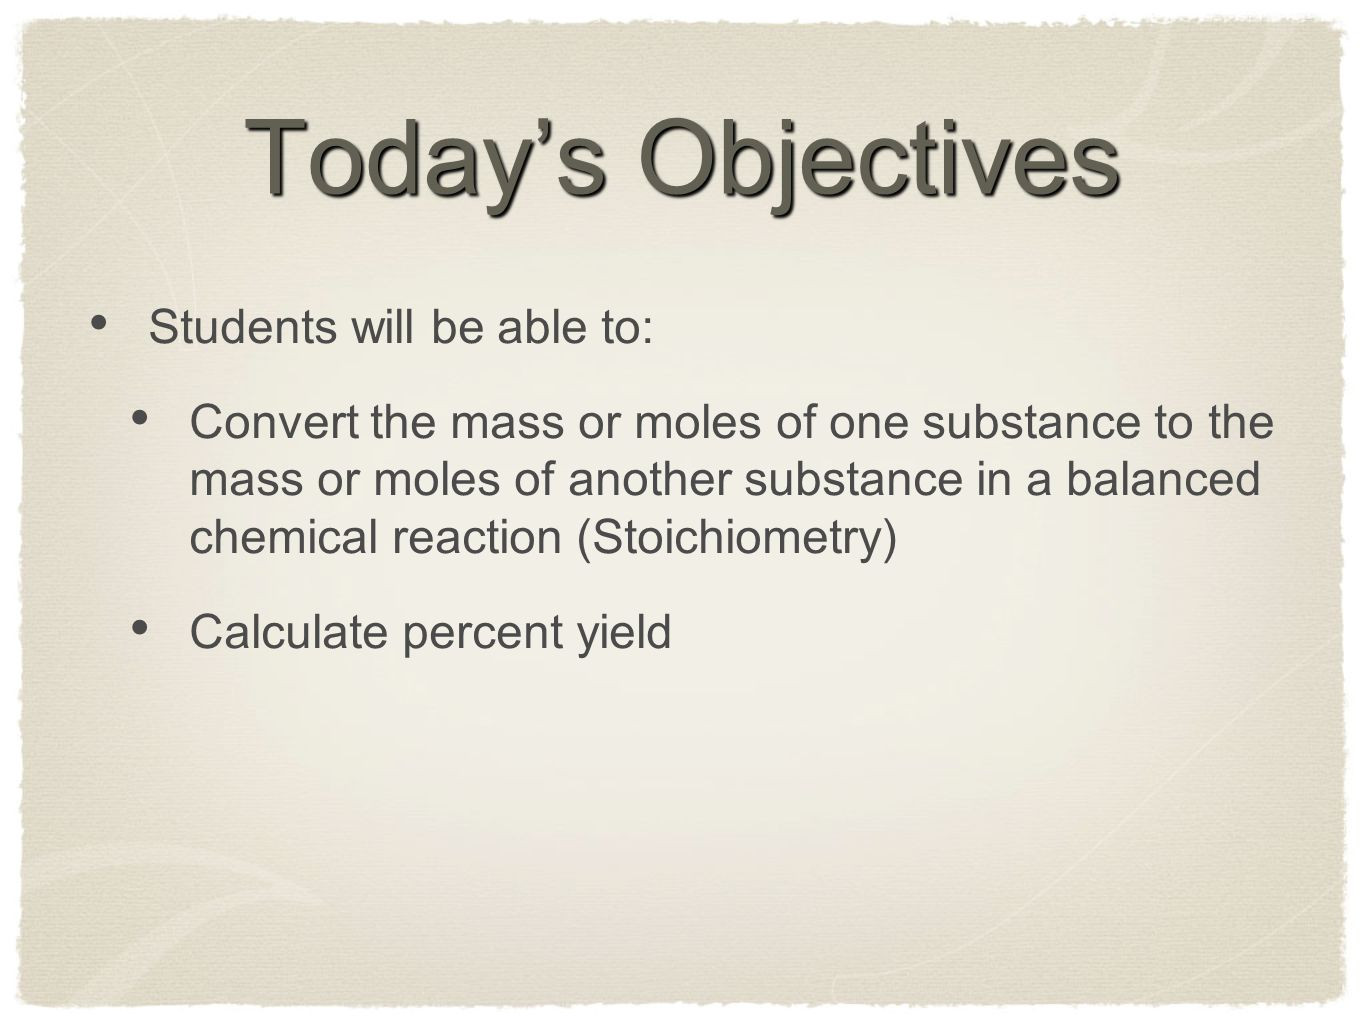 Today's Objectives Students will be able to: Convert the mass or moles of one substance to the mass or moles of another substance in a balanced chemic